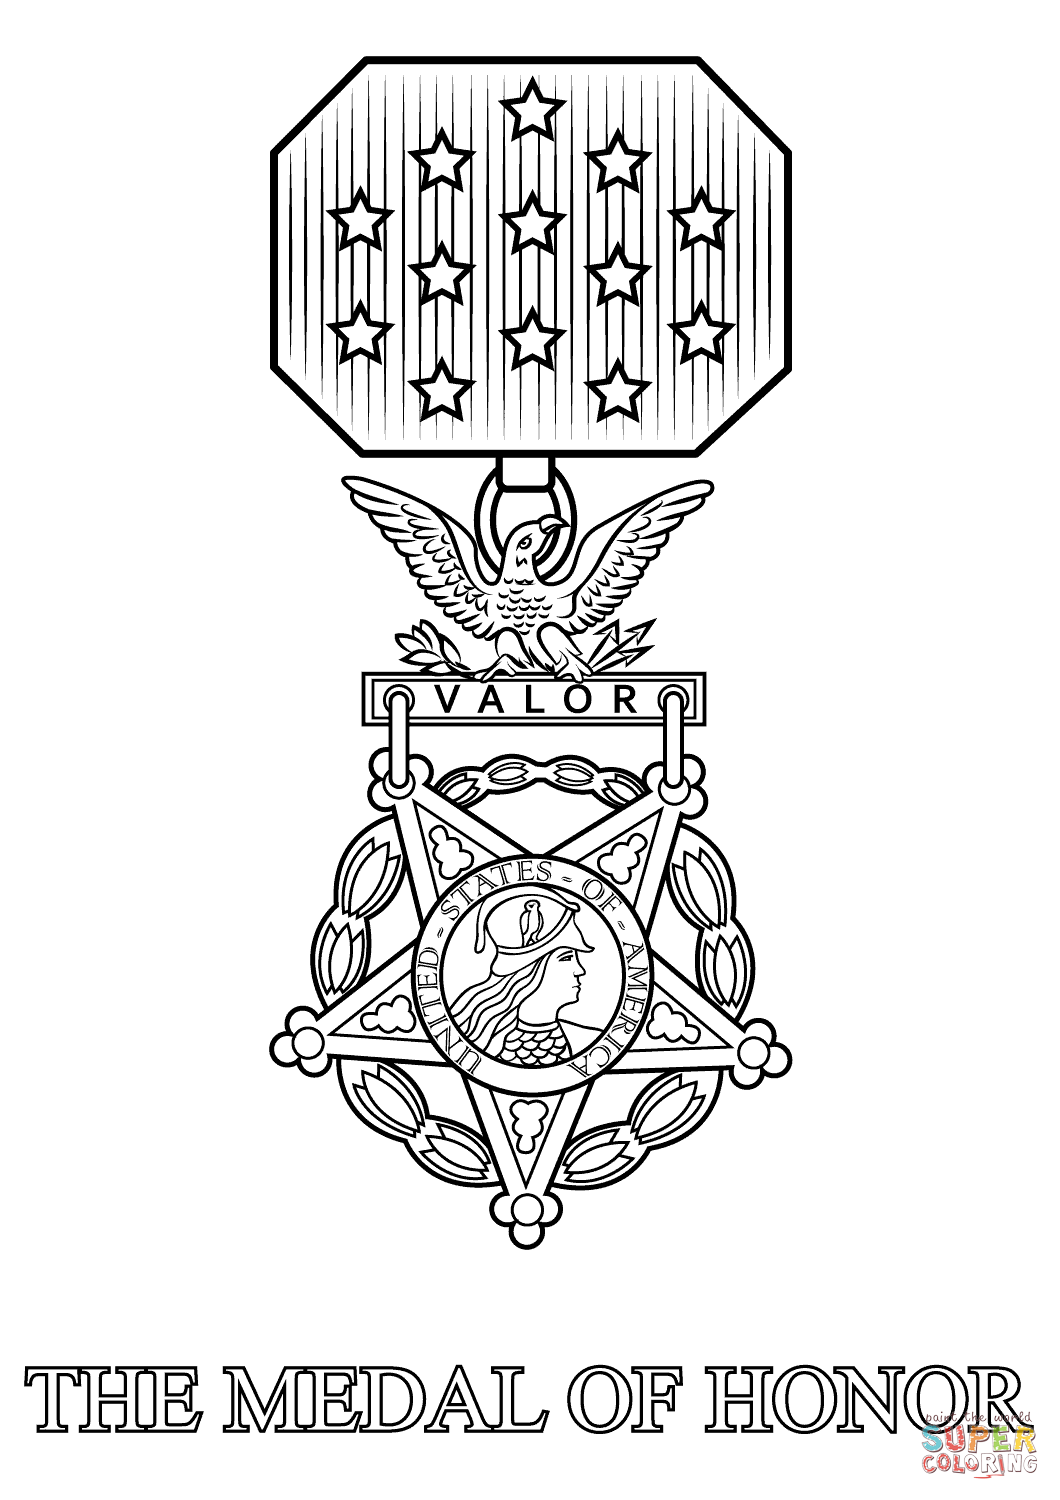 medal coloring page medal of honor coloring page free printable coloring pages coloring page medal